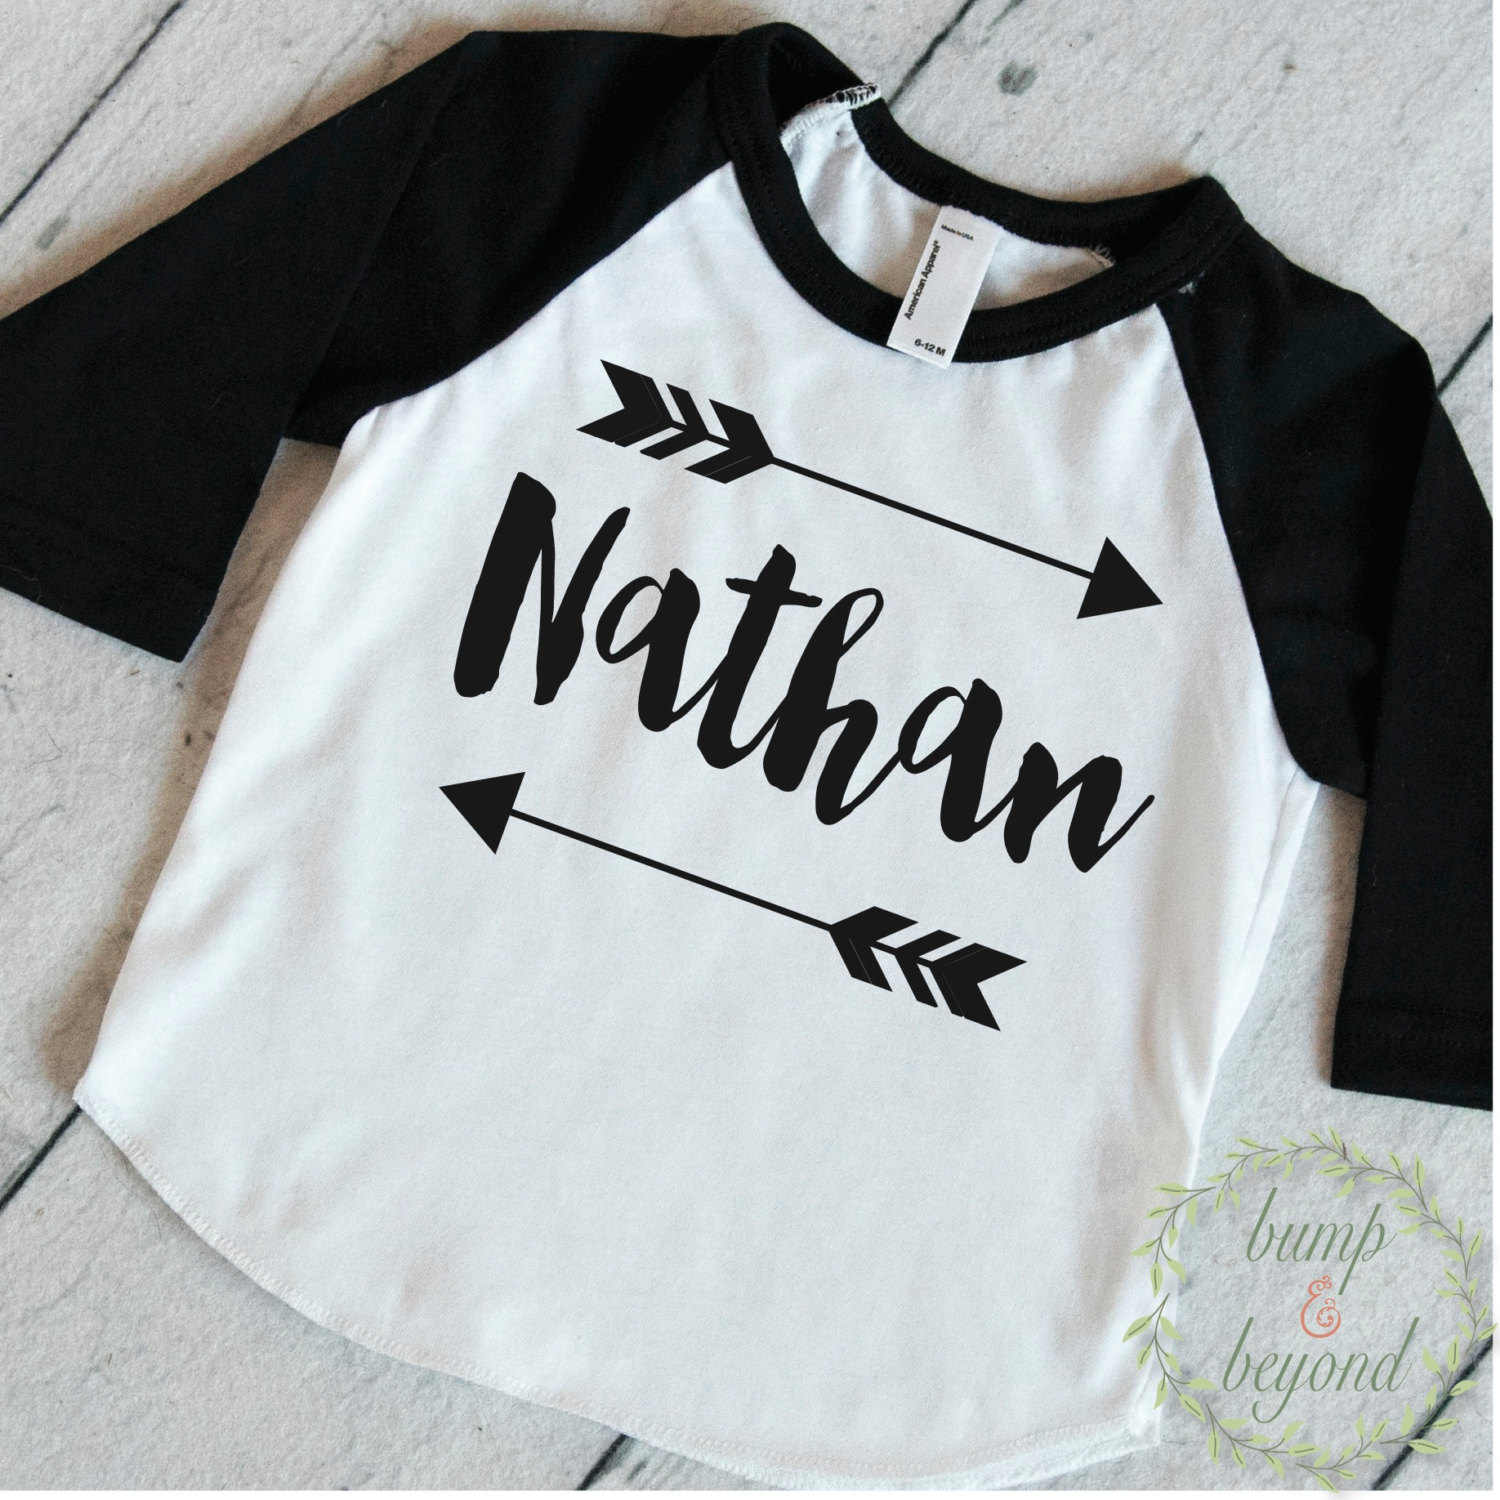 Customized T Shirts For Babies